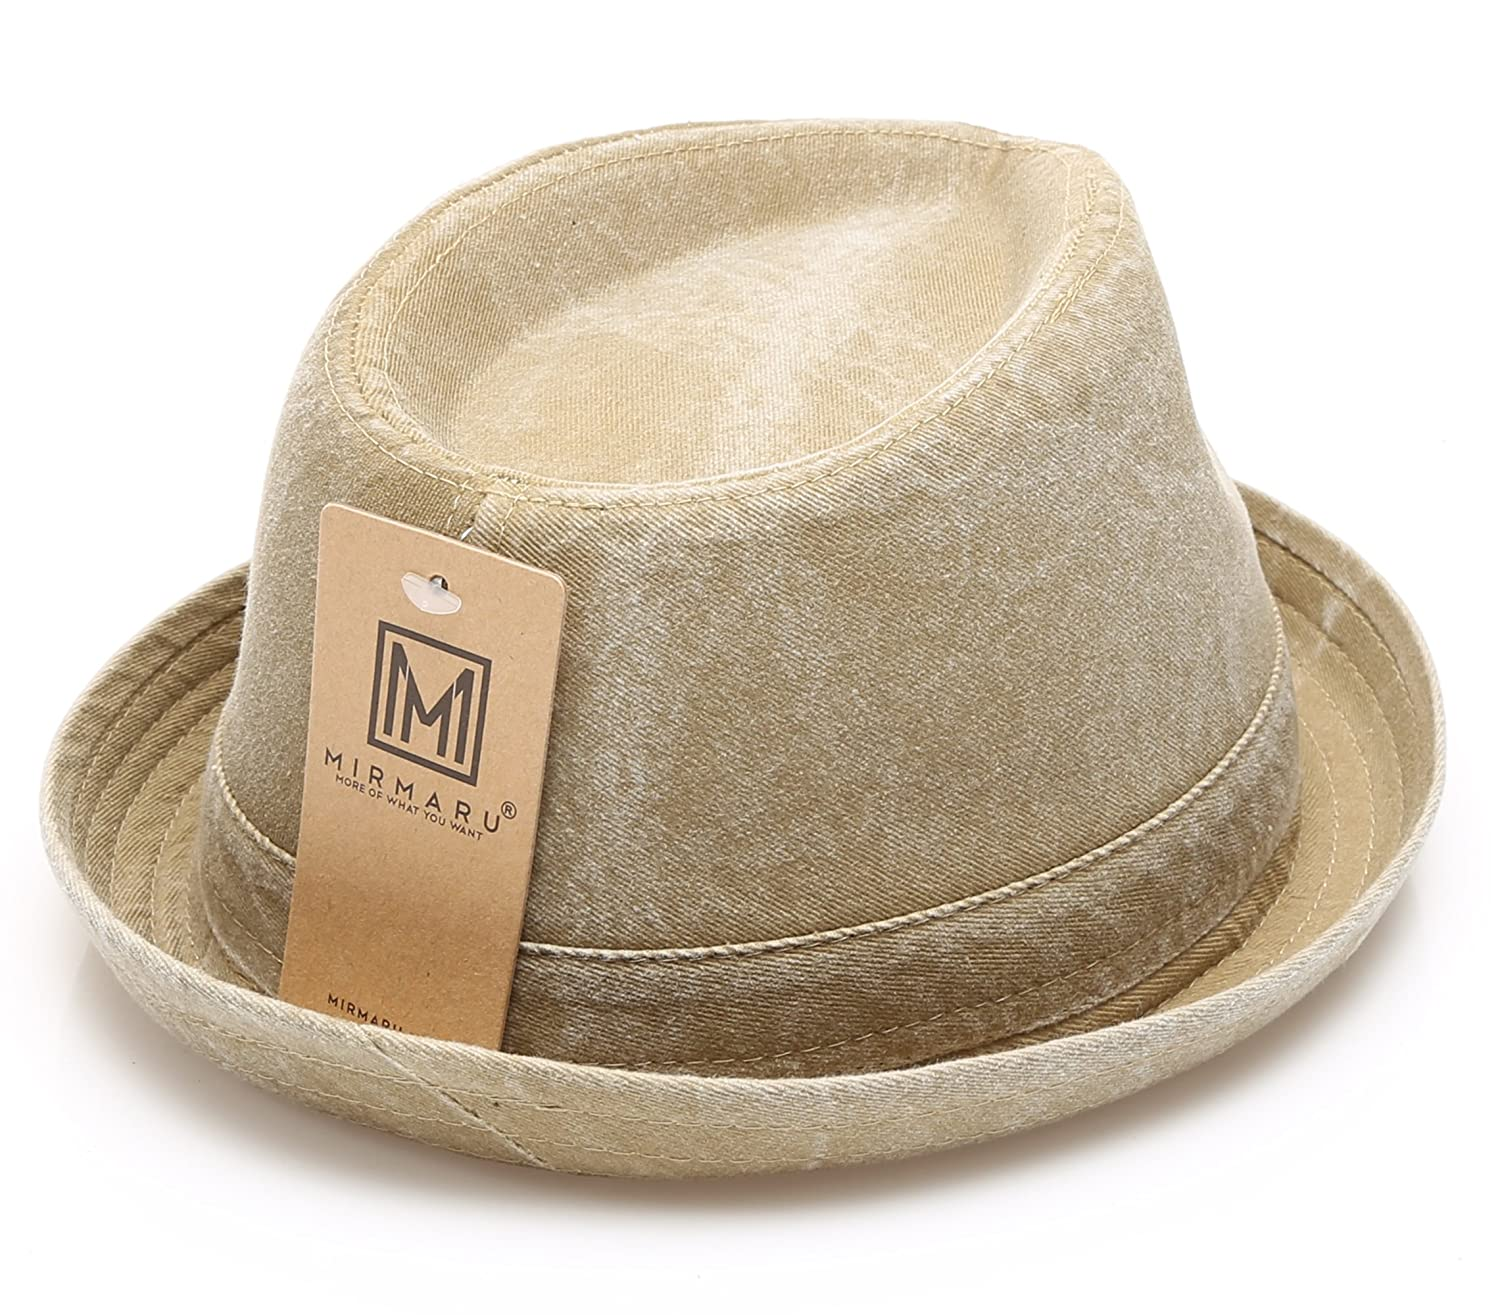 MIRMARU Men s Denim Washed Cotton Casual Vintage Style Fedora Sun Hat at  Amazon Men s Clothing store  5ad21ce552c3